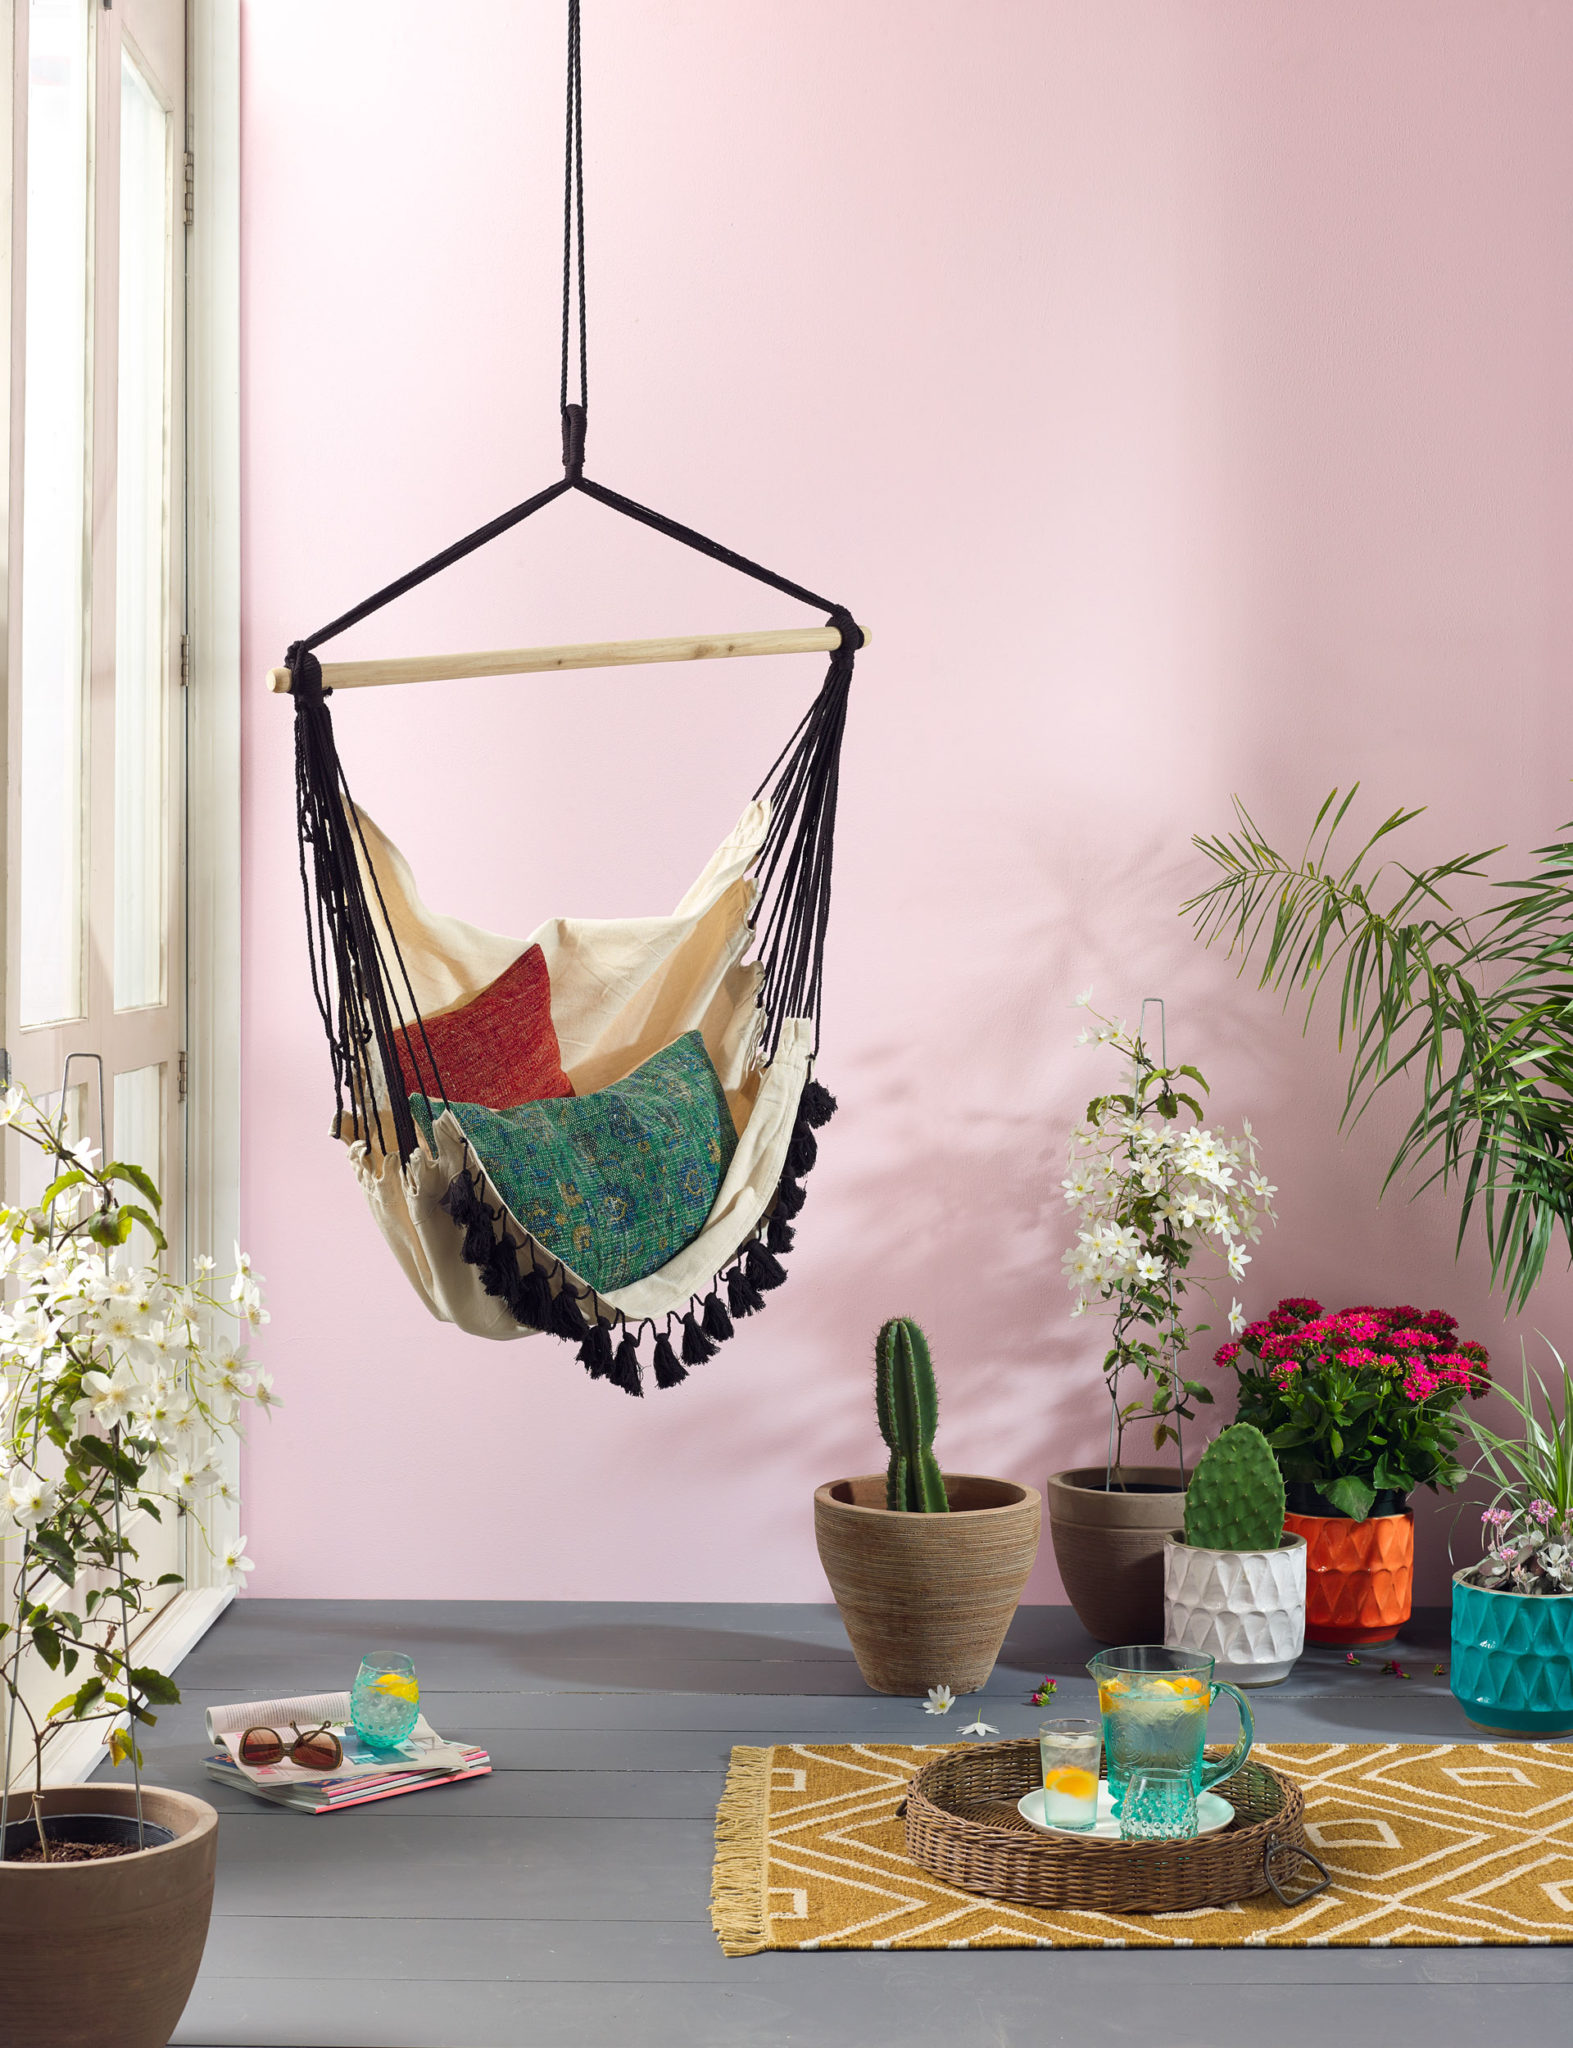 Bohemian hammock chair in a pastel room